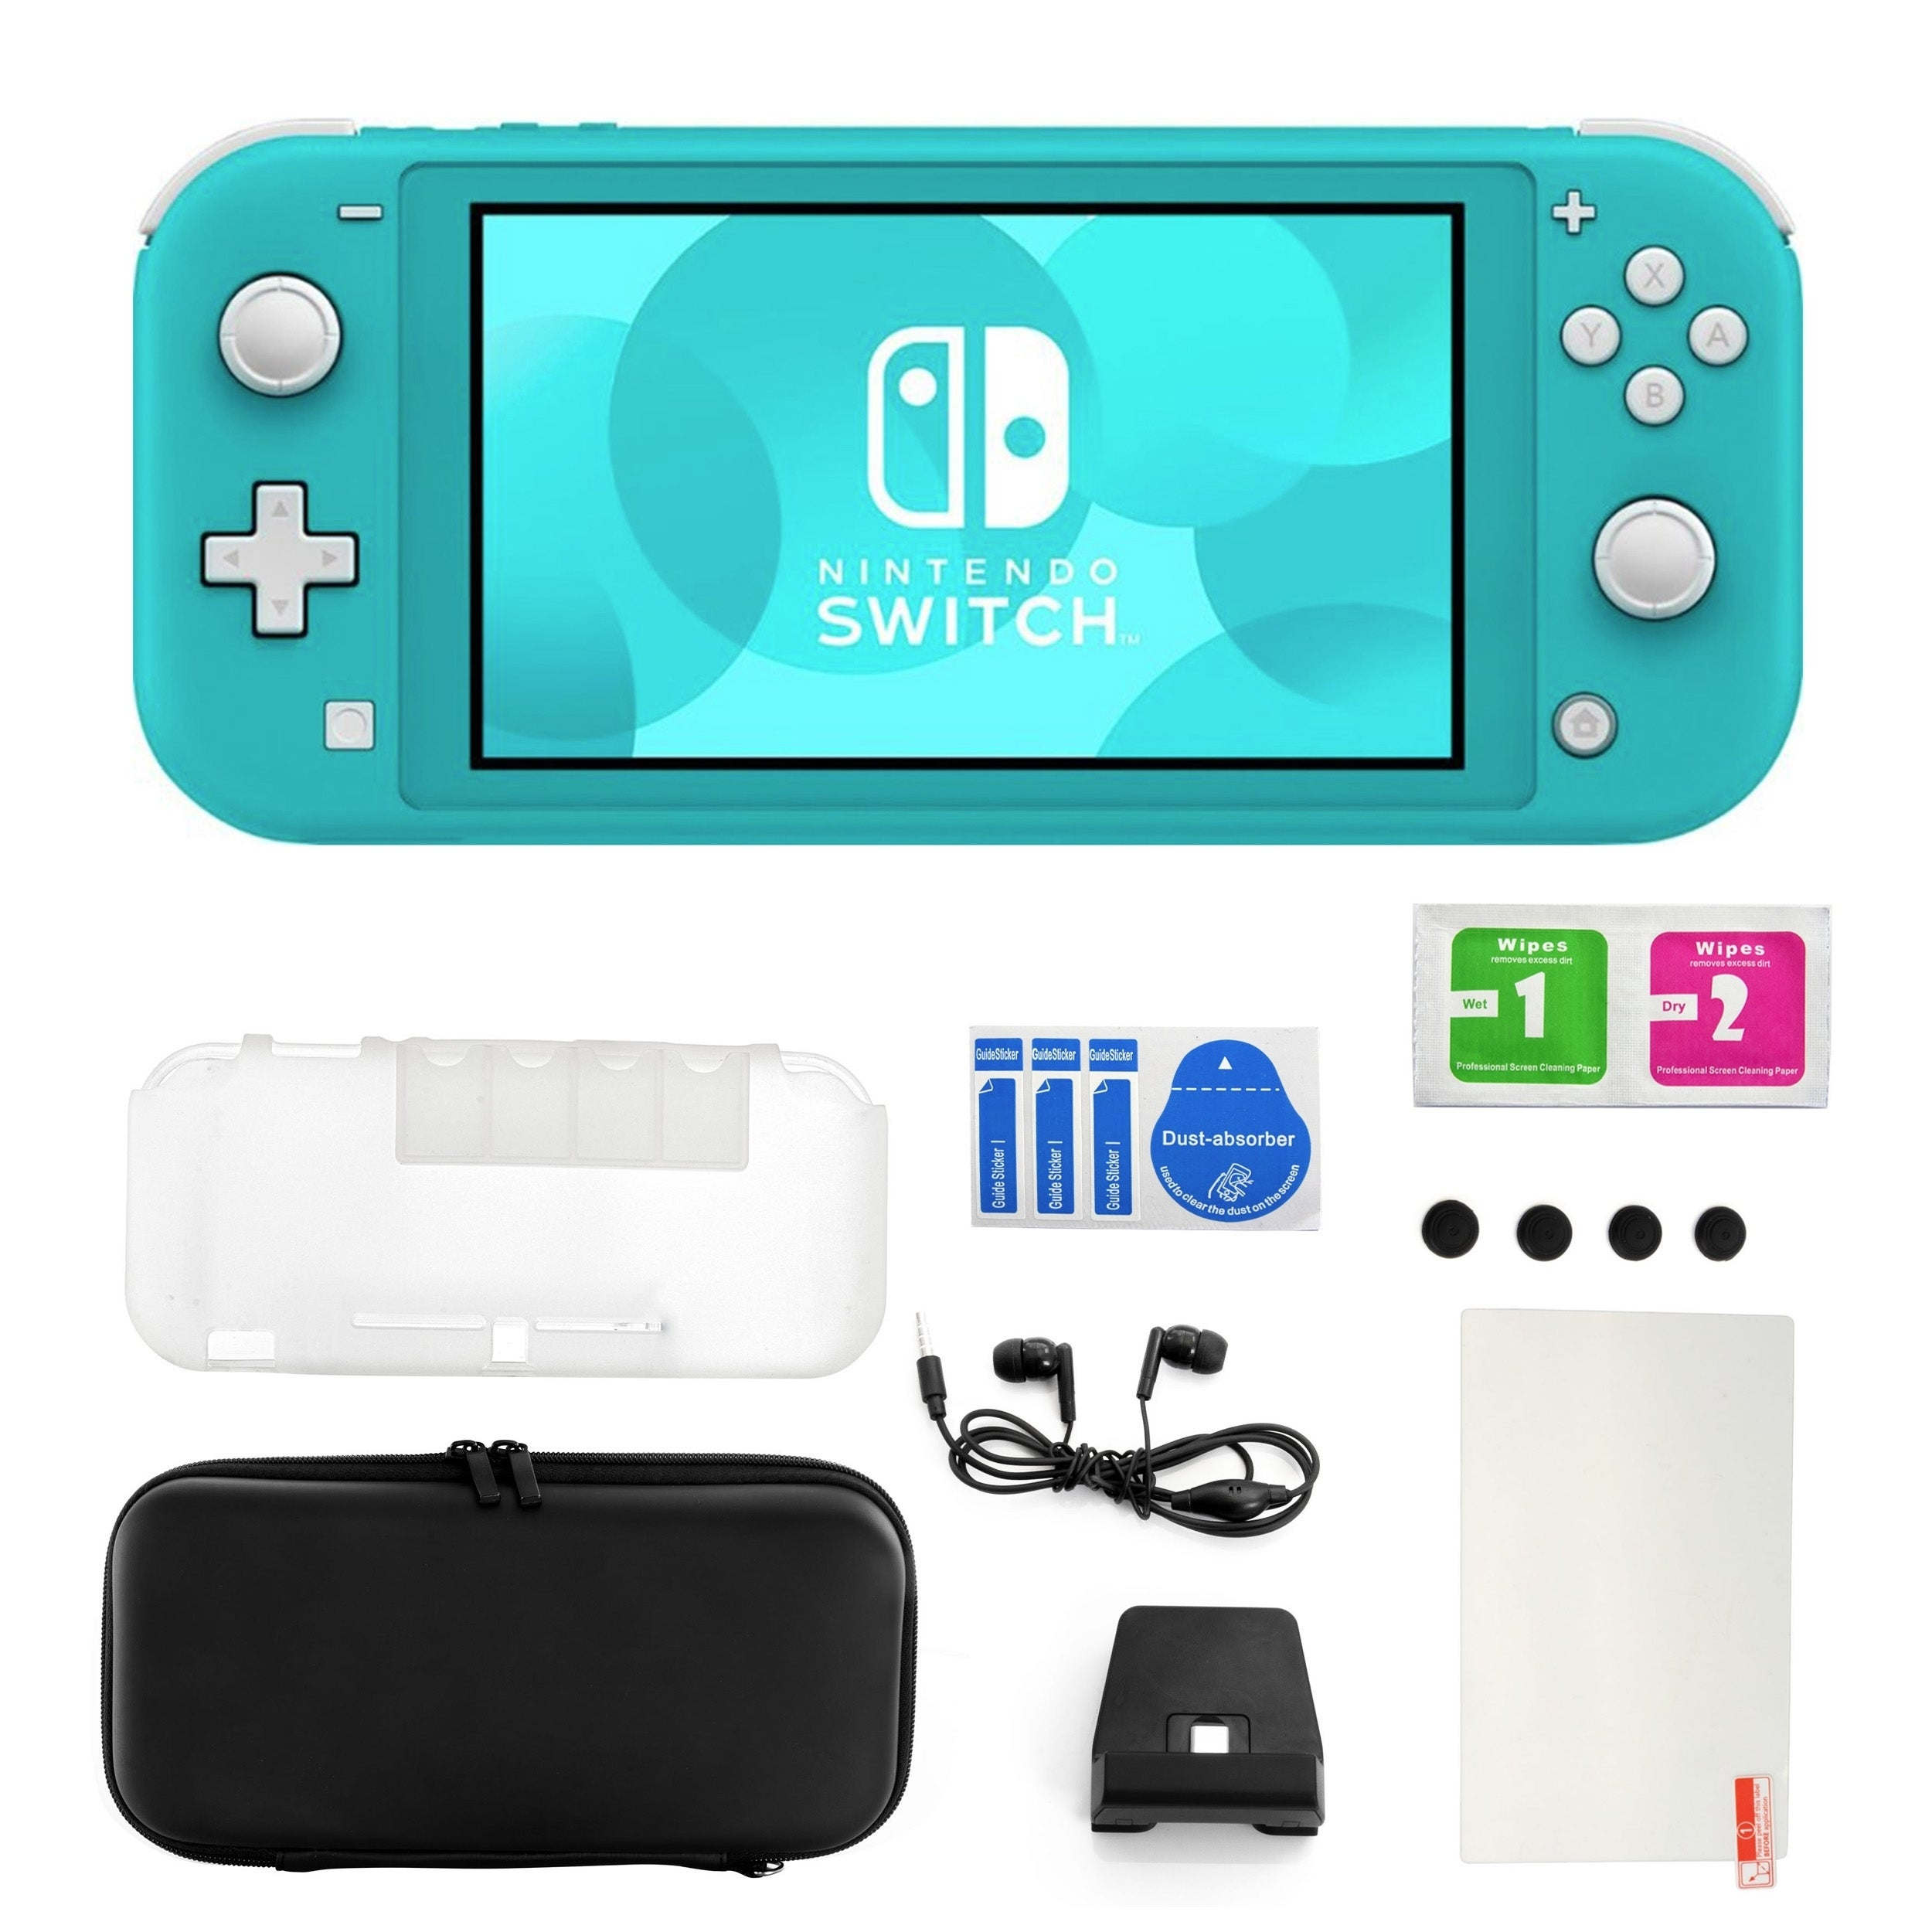 Shop Black Friday Deals On Nintendo Switch Lite In Turquoise With 11 In 1 Accessories Kit Overstock 30095499